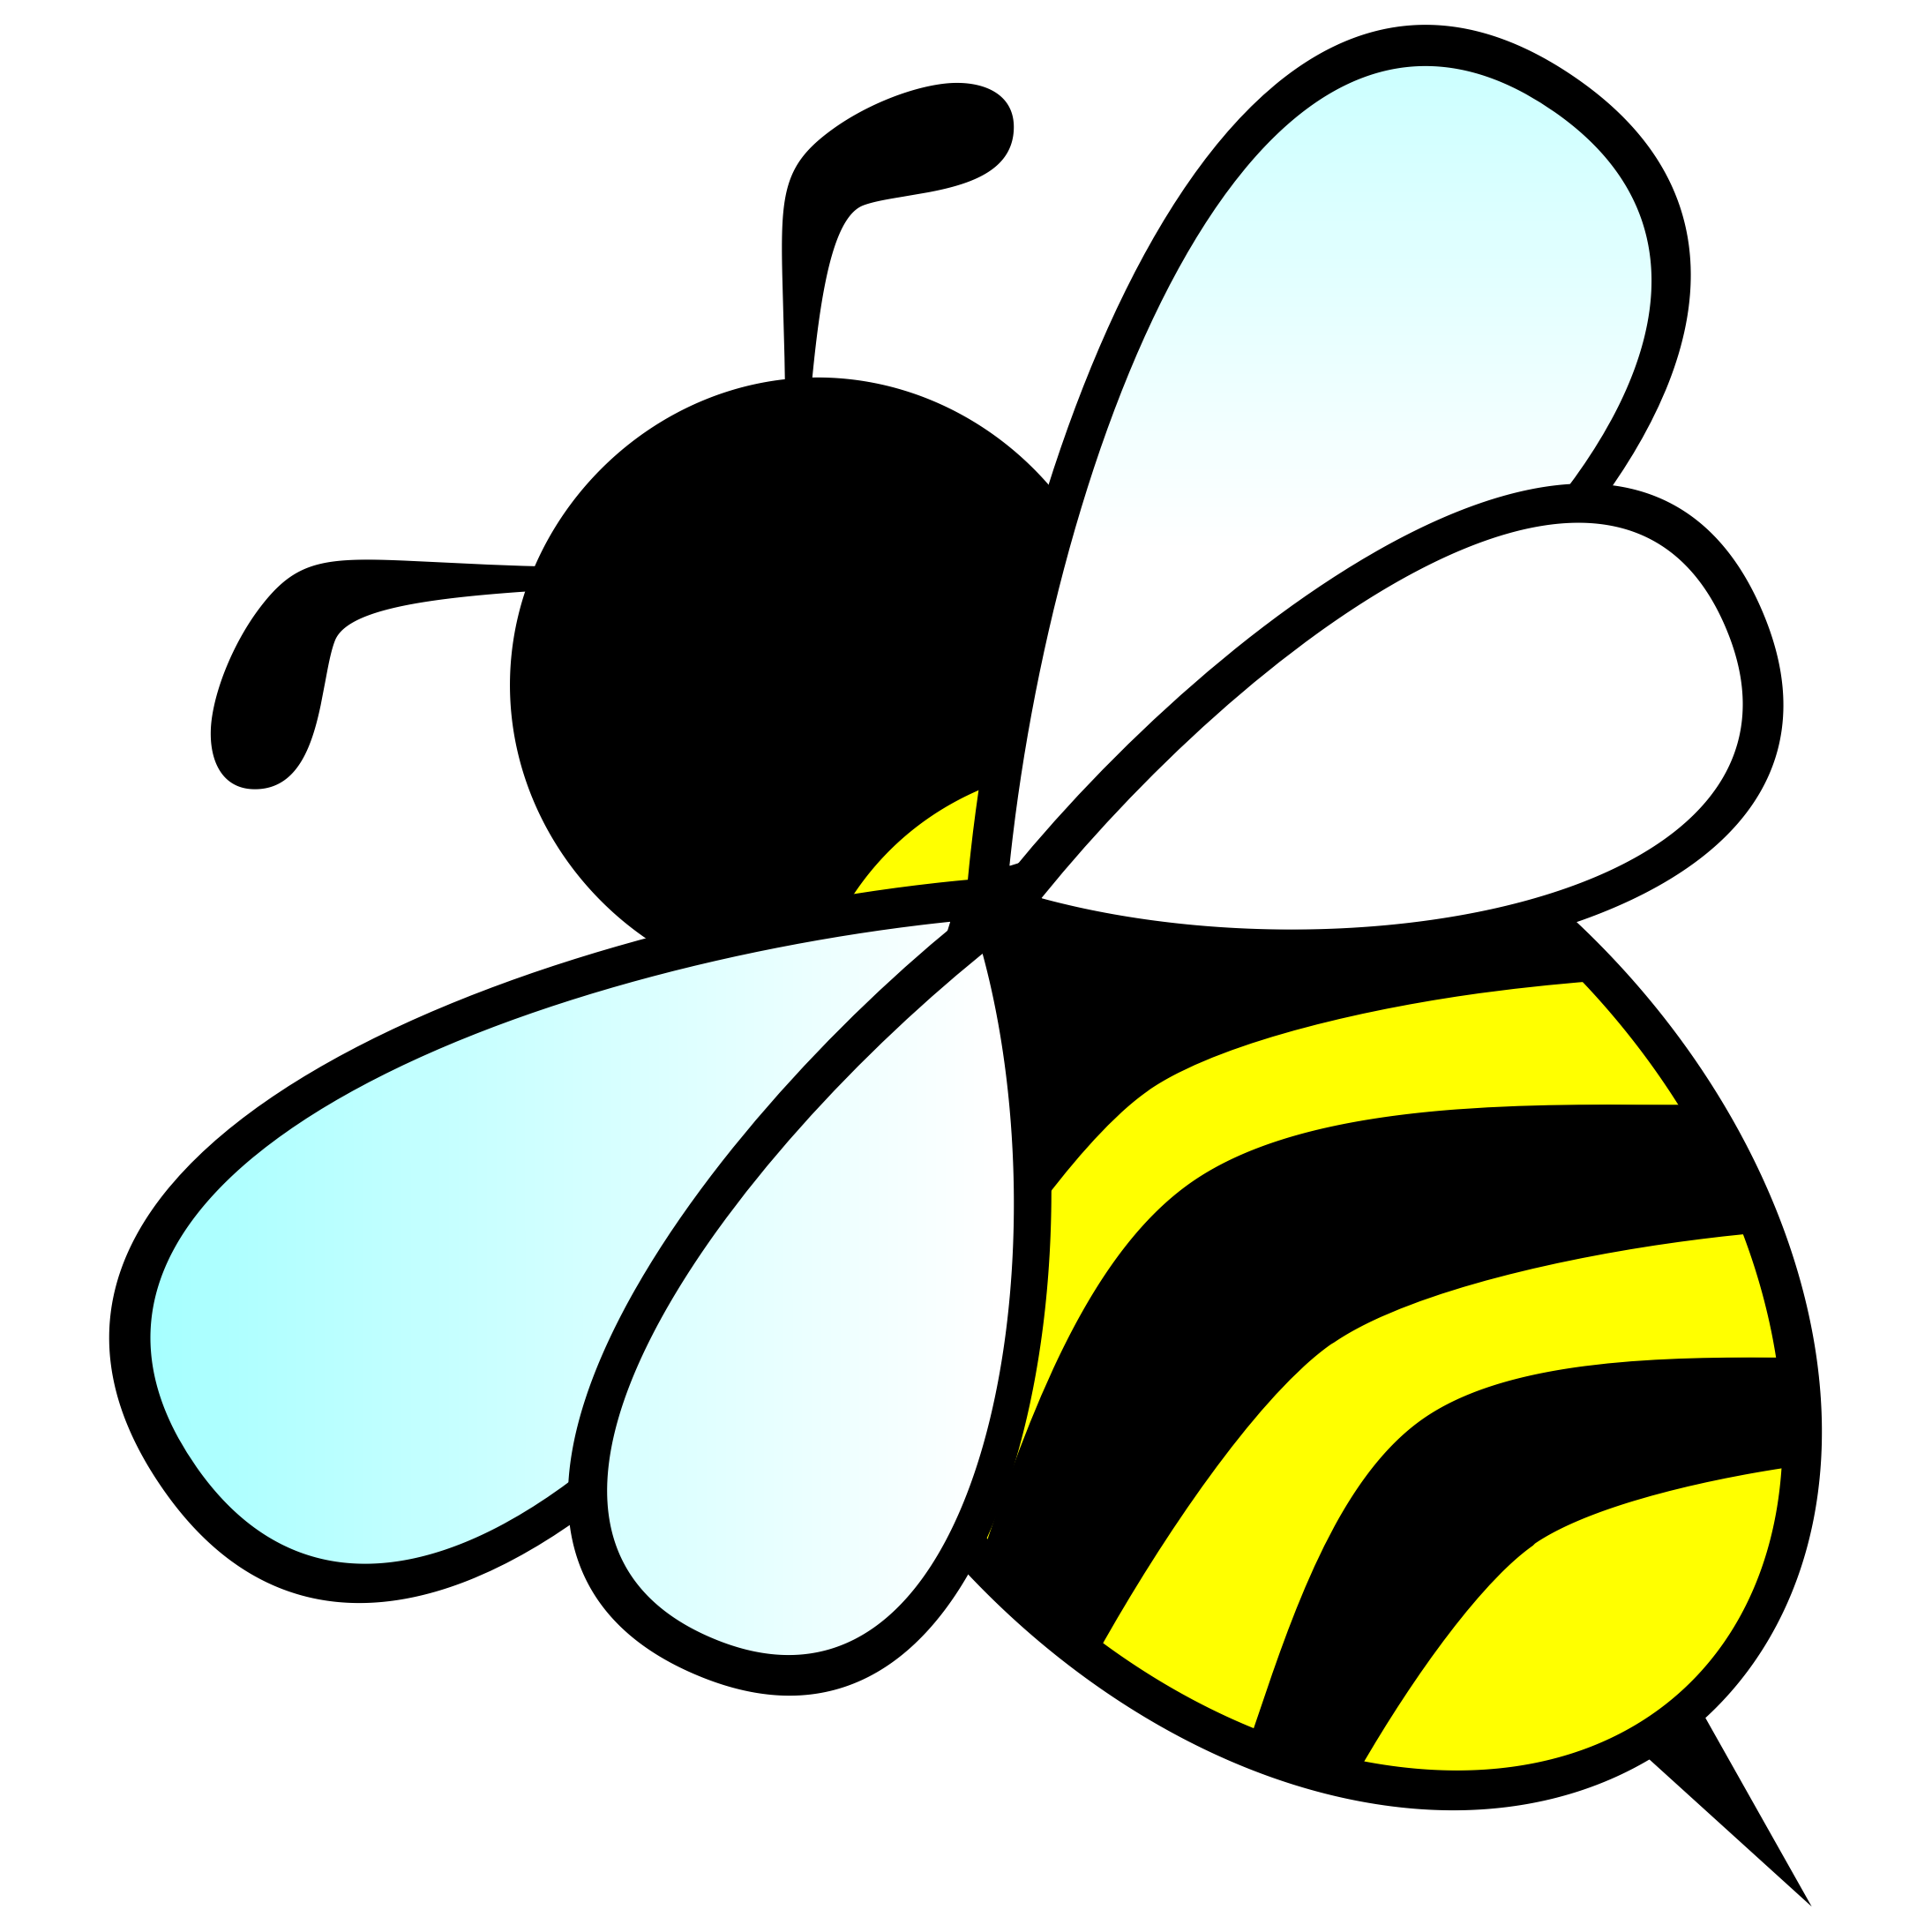 2190x2190 Bee By @anarres, A Bee